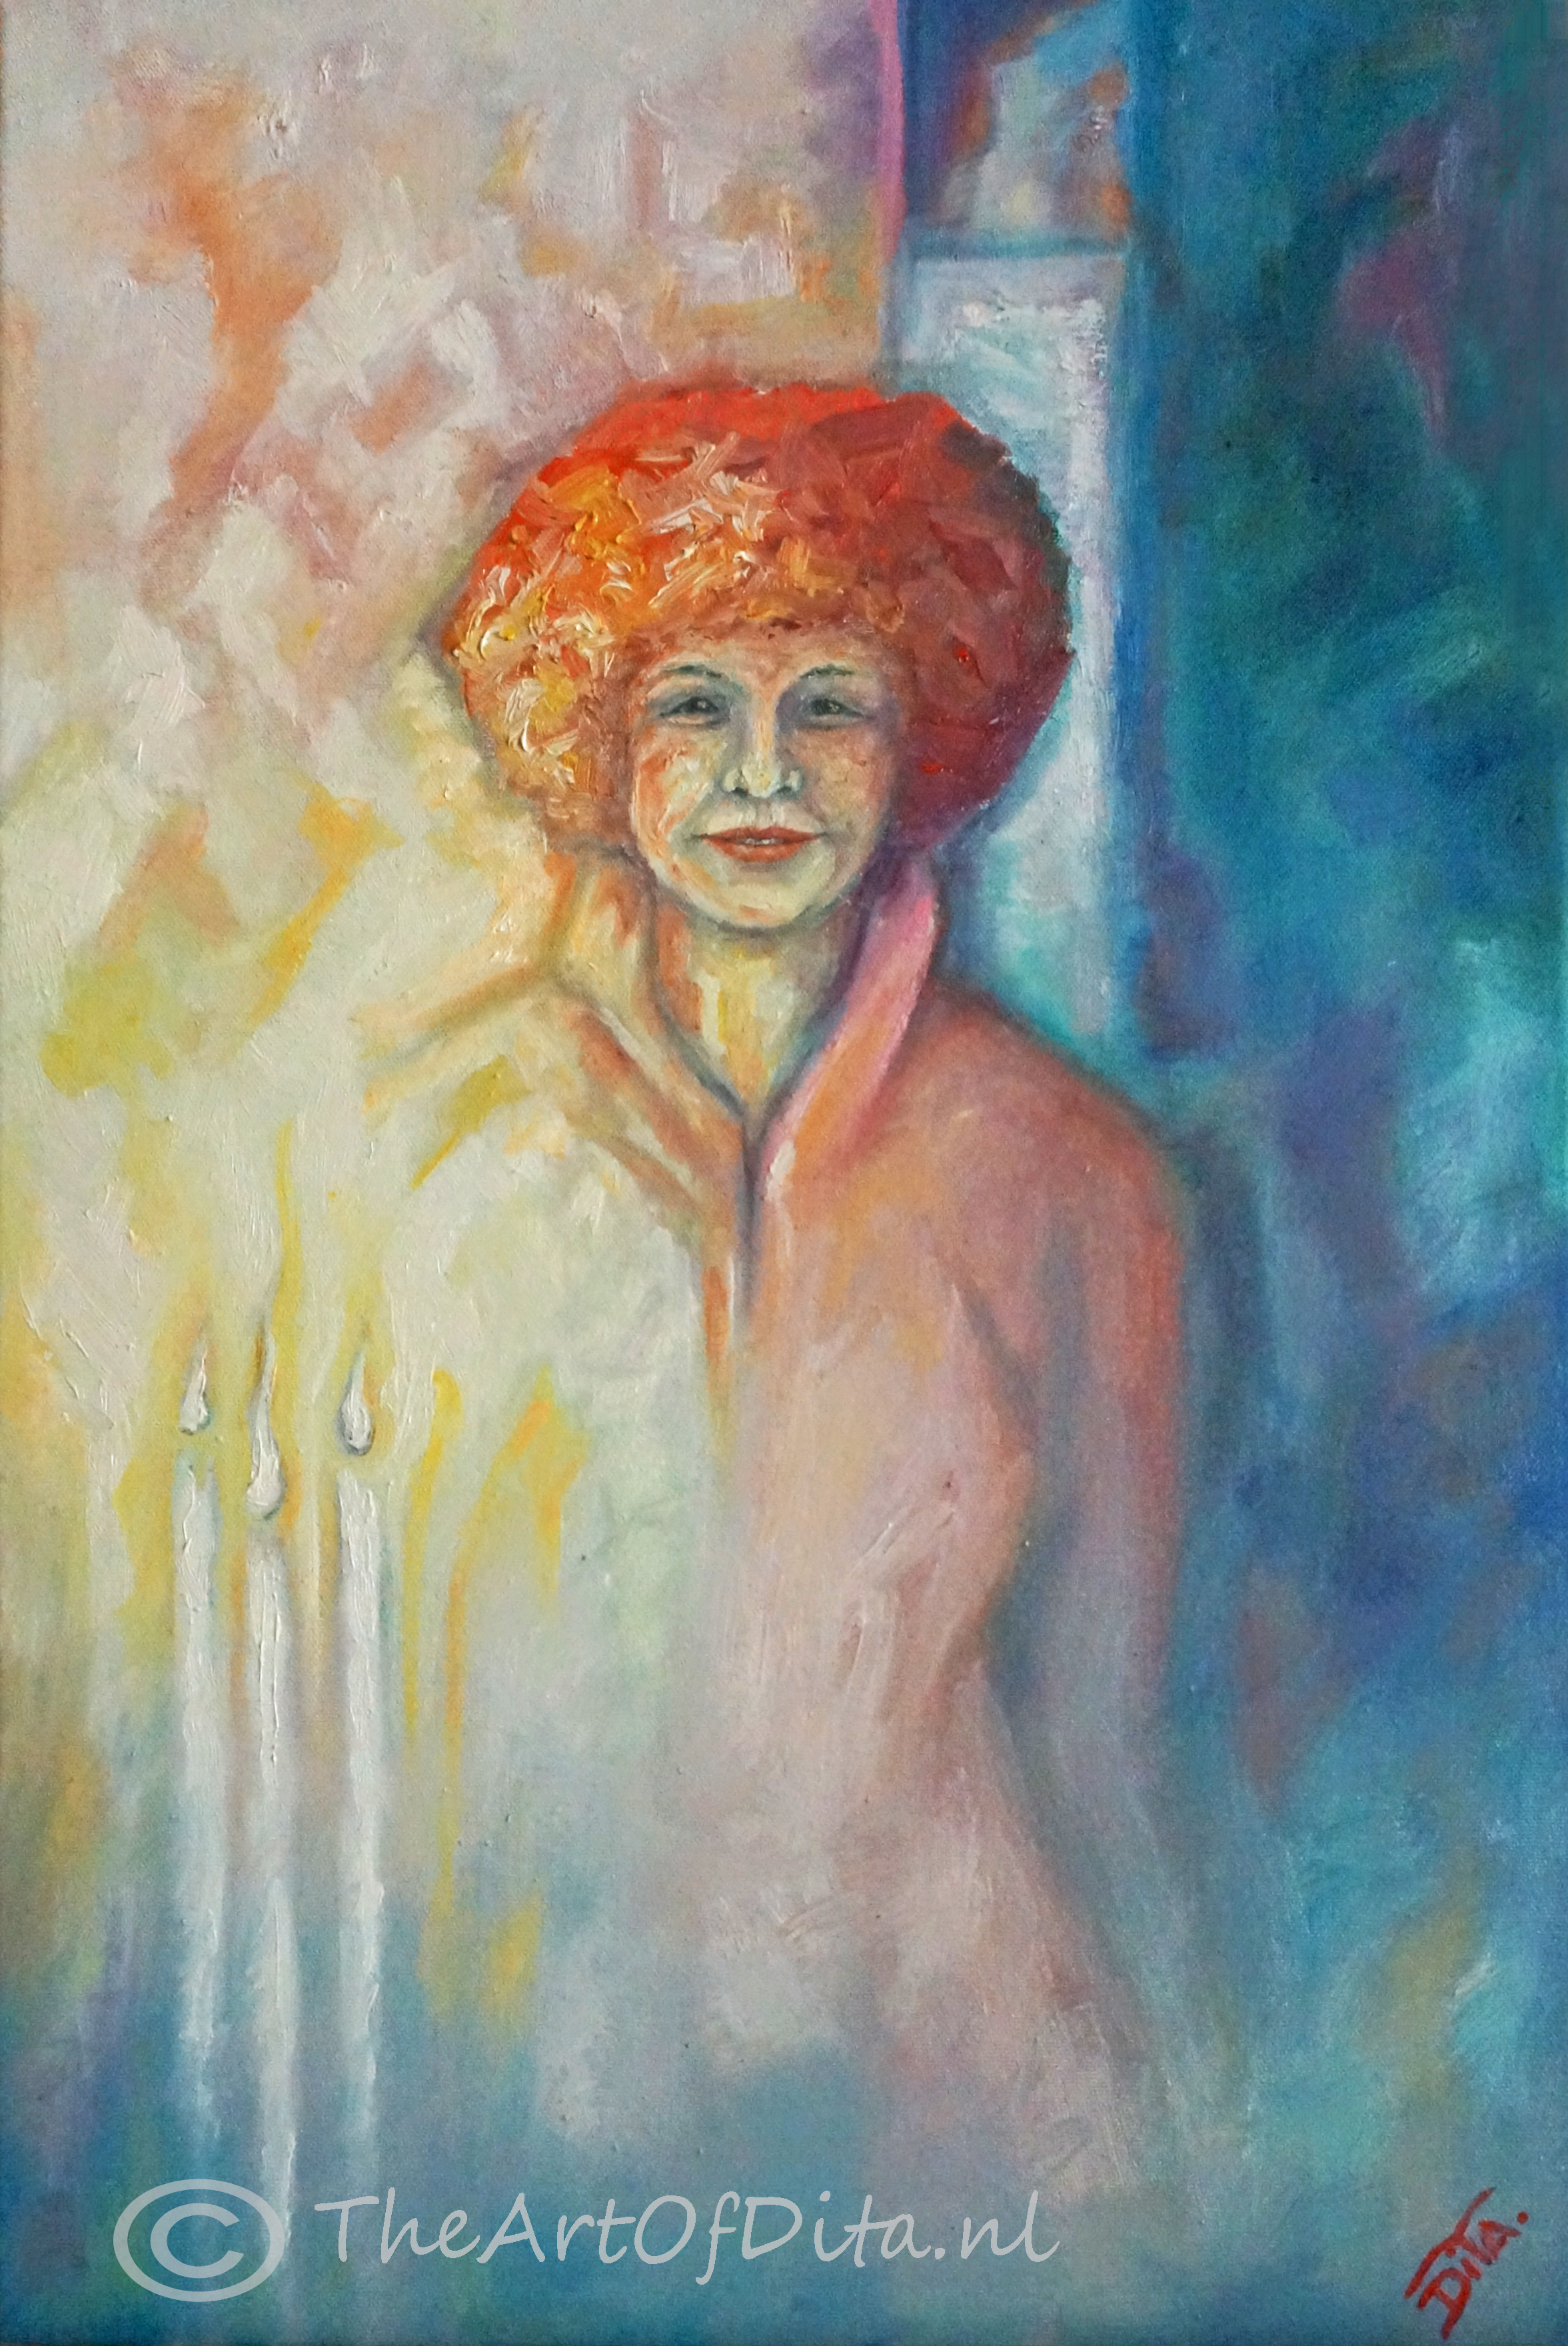 Oil on canvas, 60-40 cm.